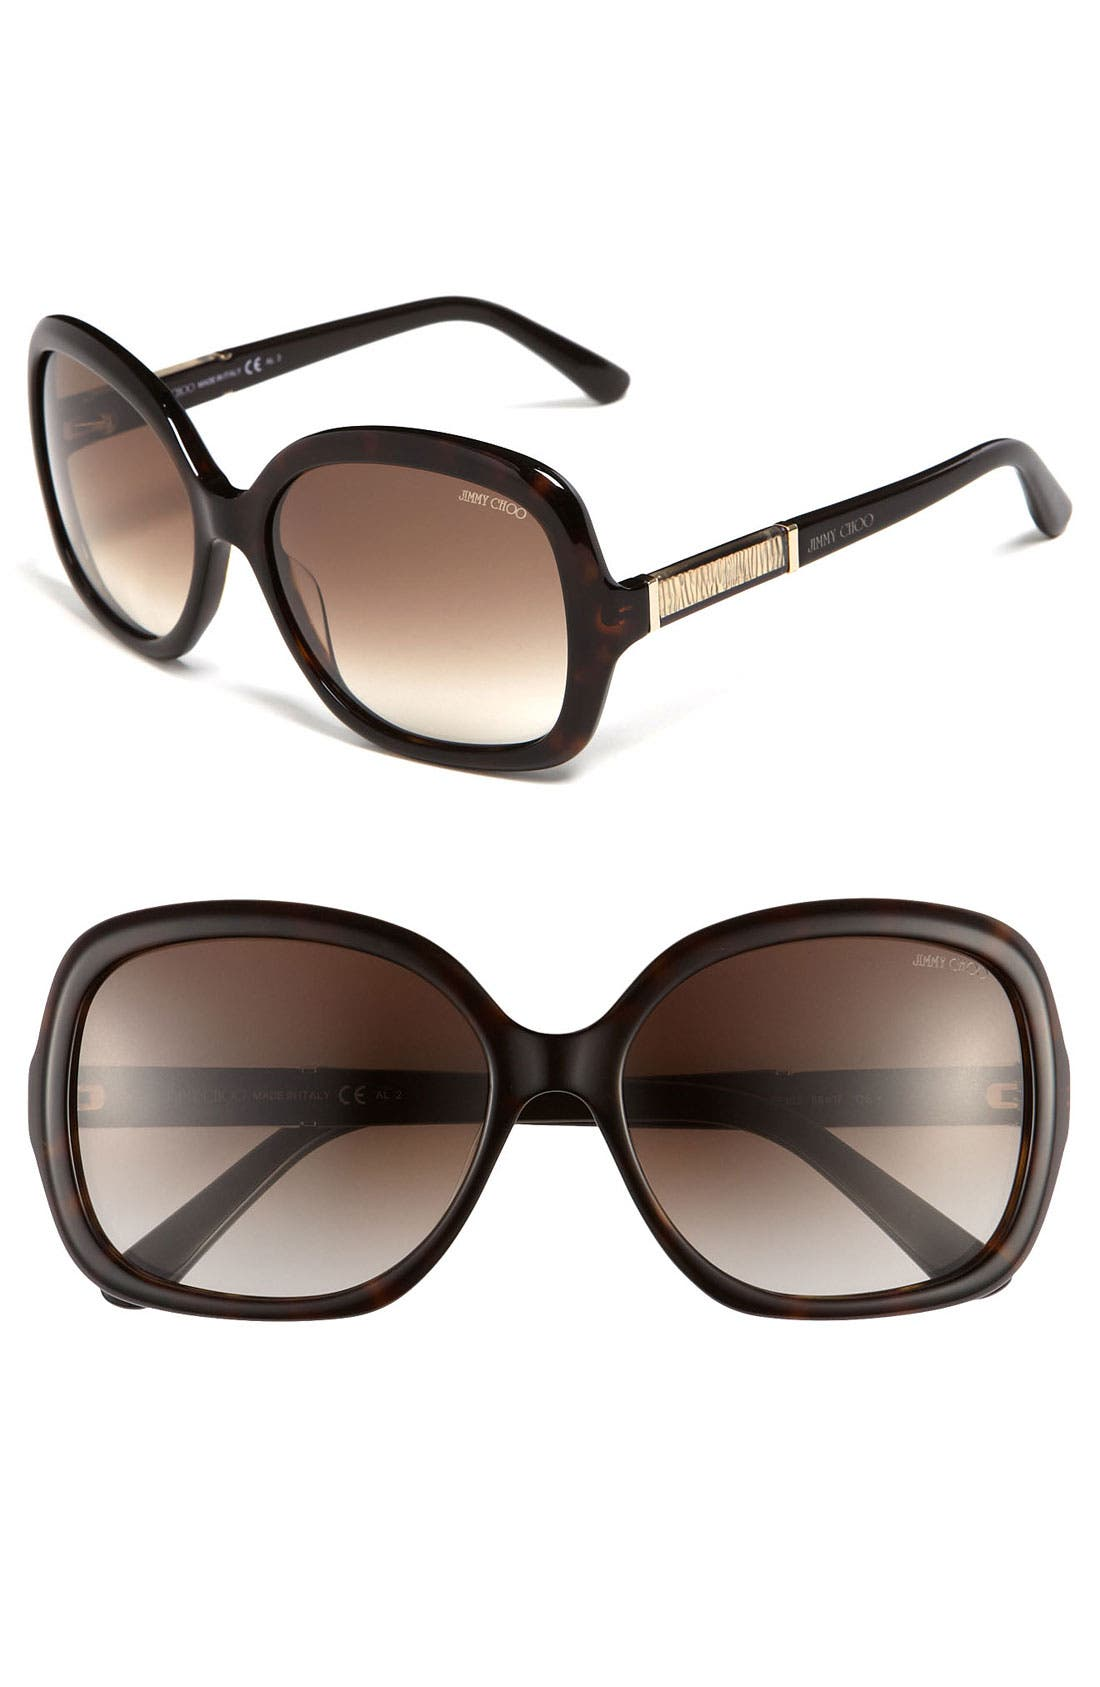 Alternate Image 1 Selected - Jimmy Choo 'Mita' Oversized Sunglasses